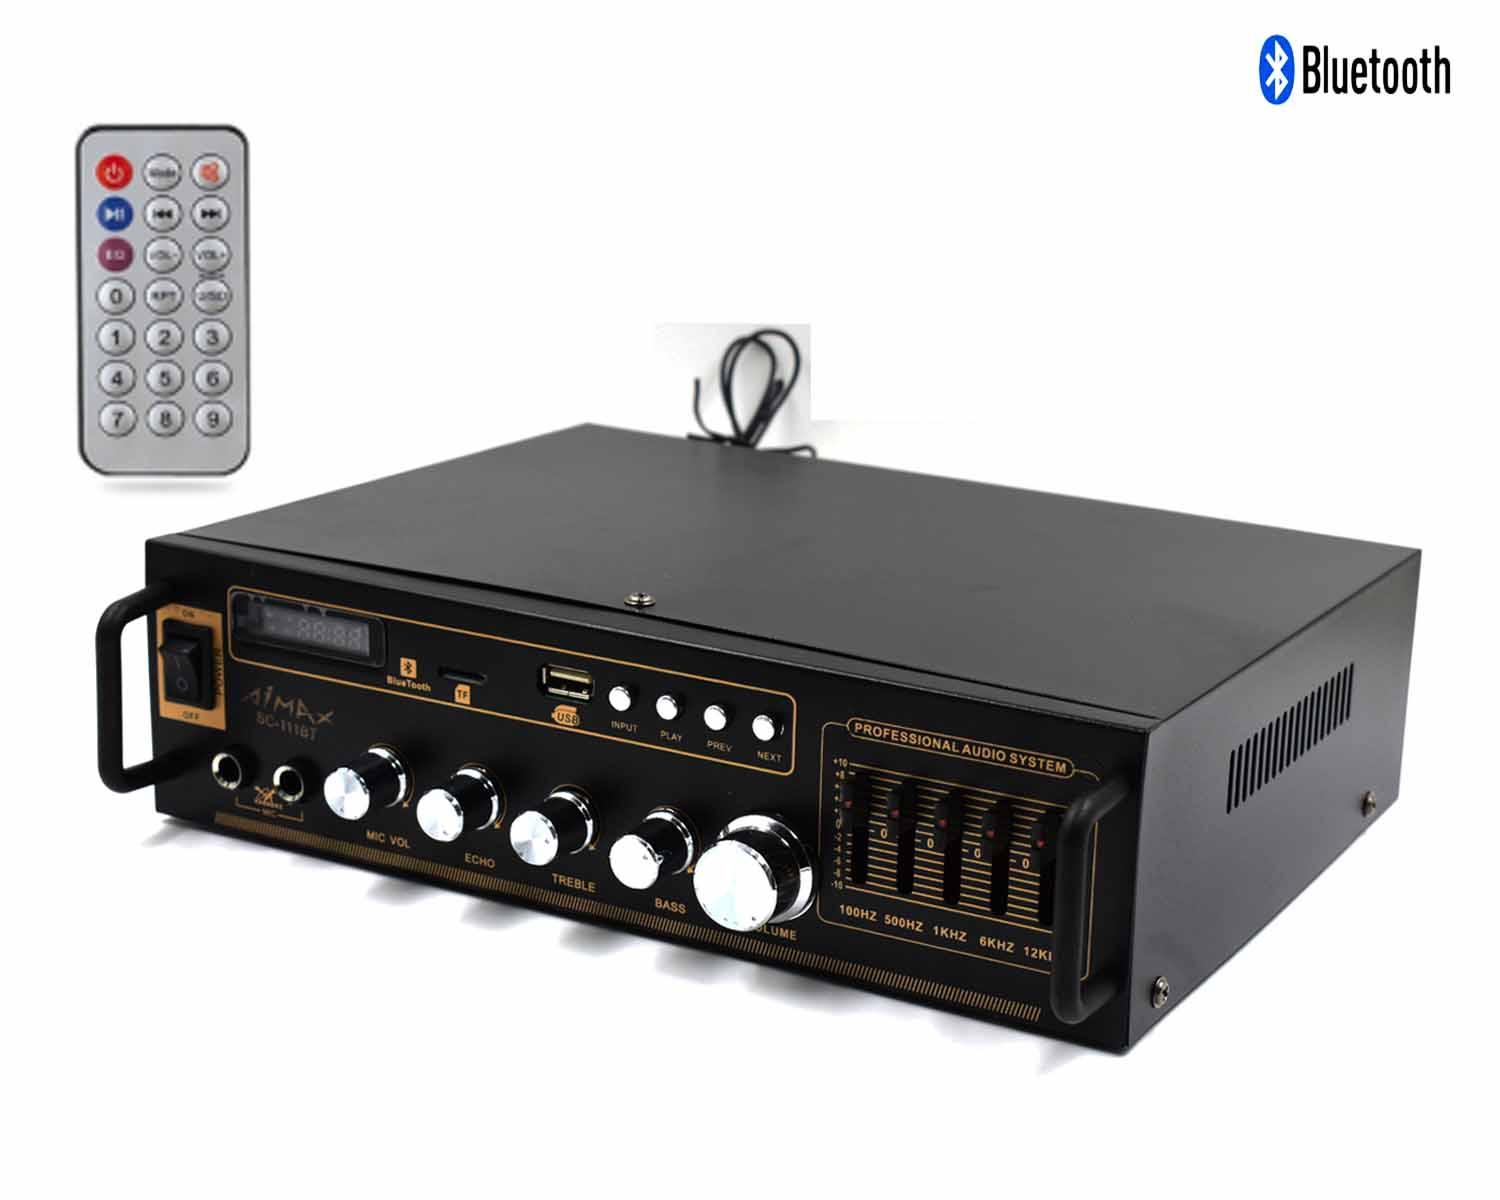 hight resolution of sc 111bt amplifier bluetooth radio iso connector with remote control